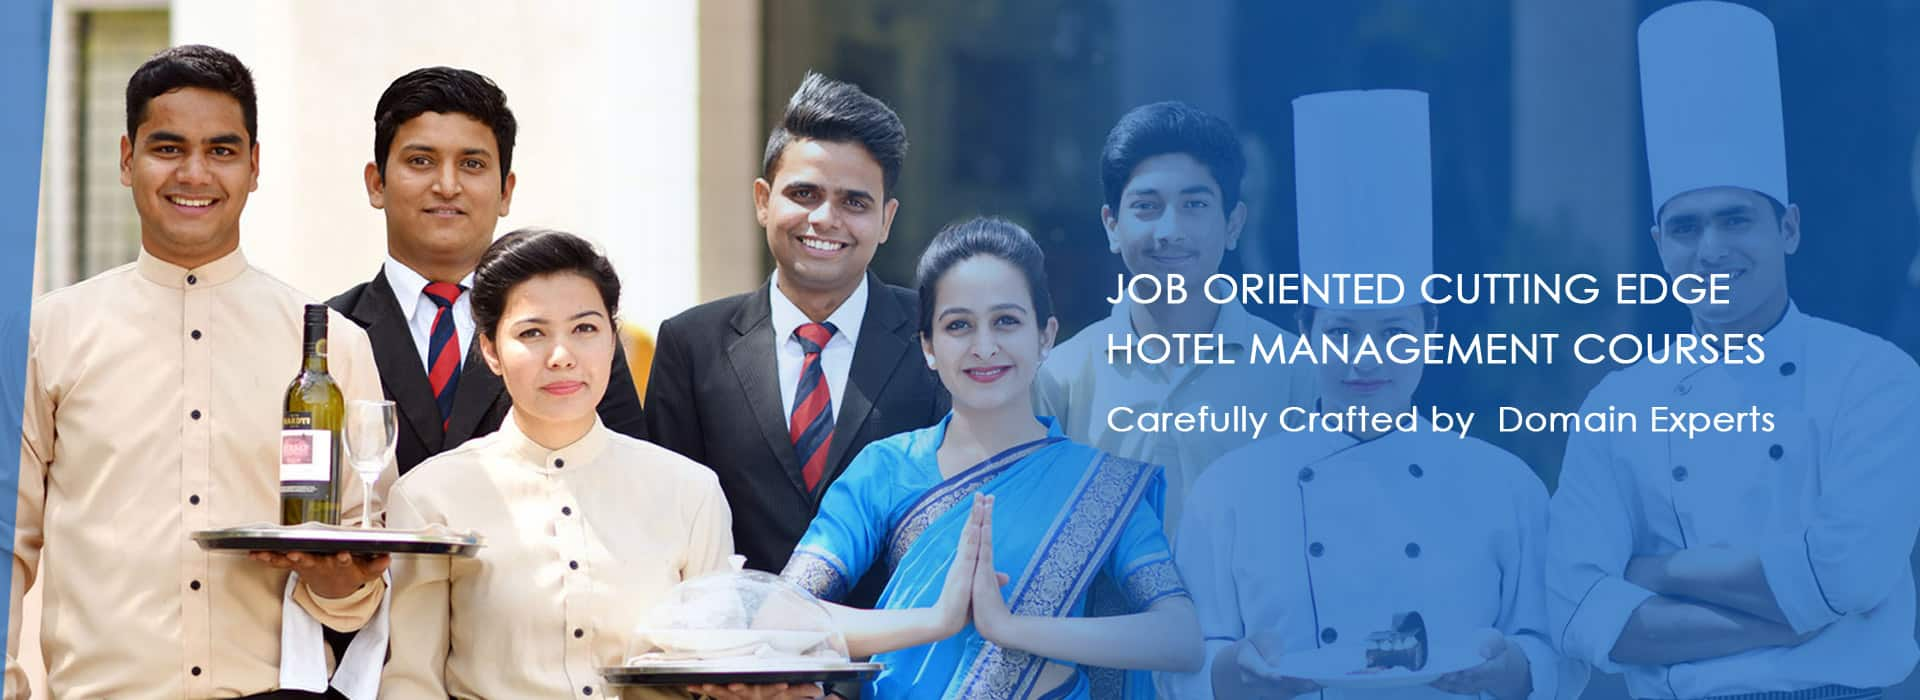 job opportunities in hospitality industry